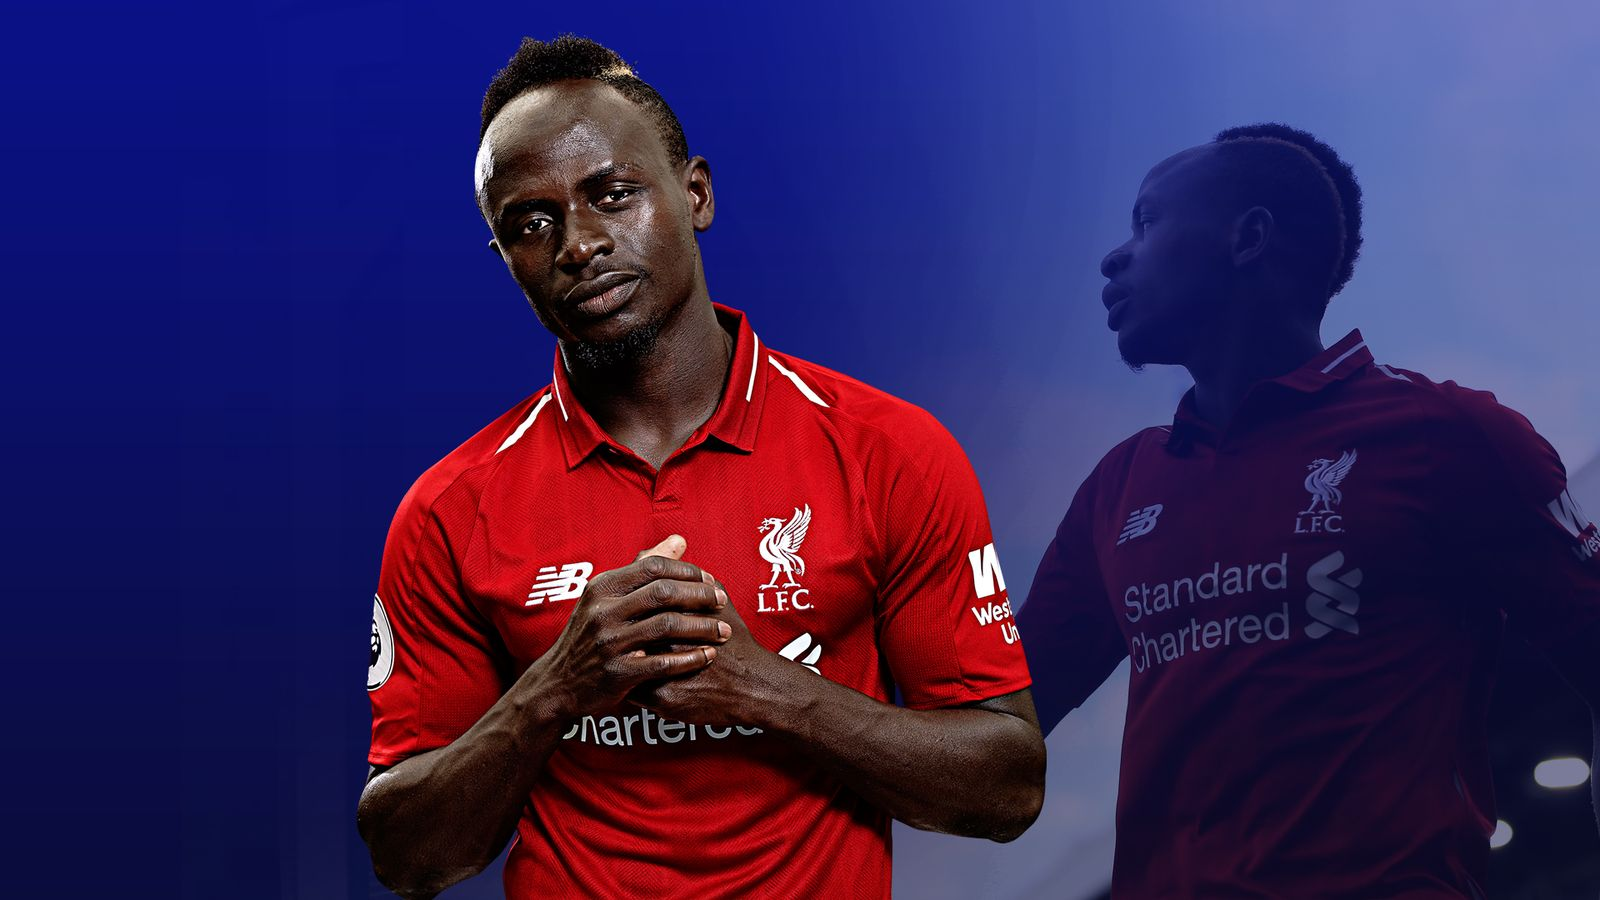 Sadio Mane has stepped up for Liverpool in the title run